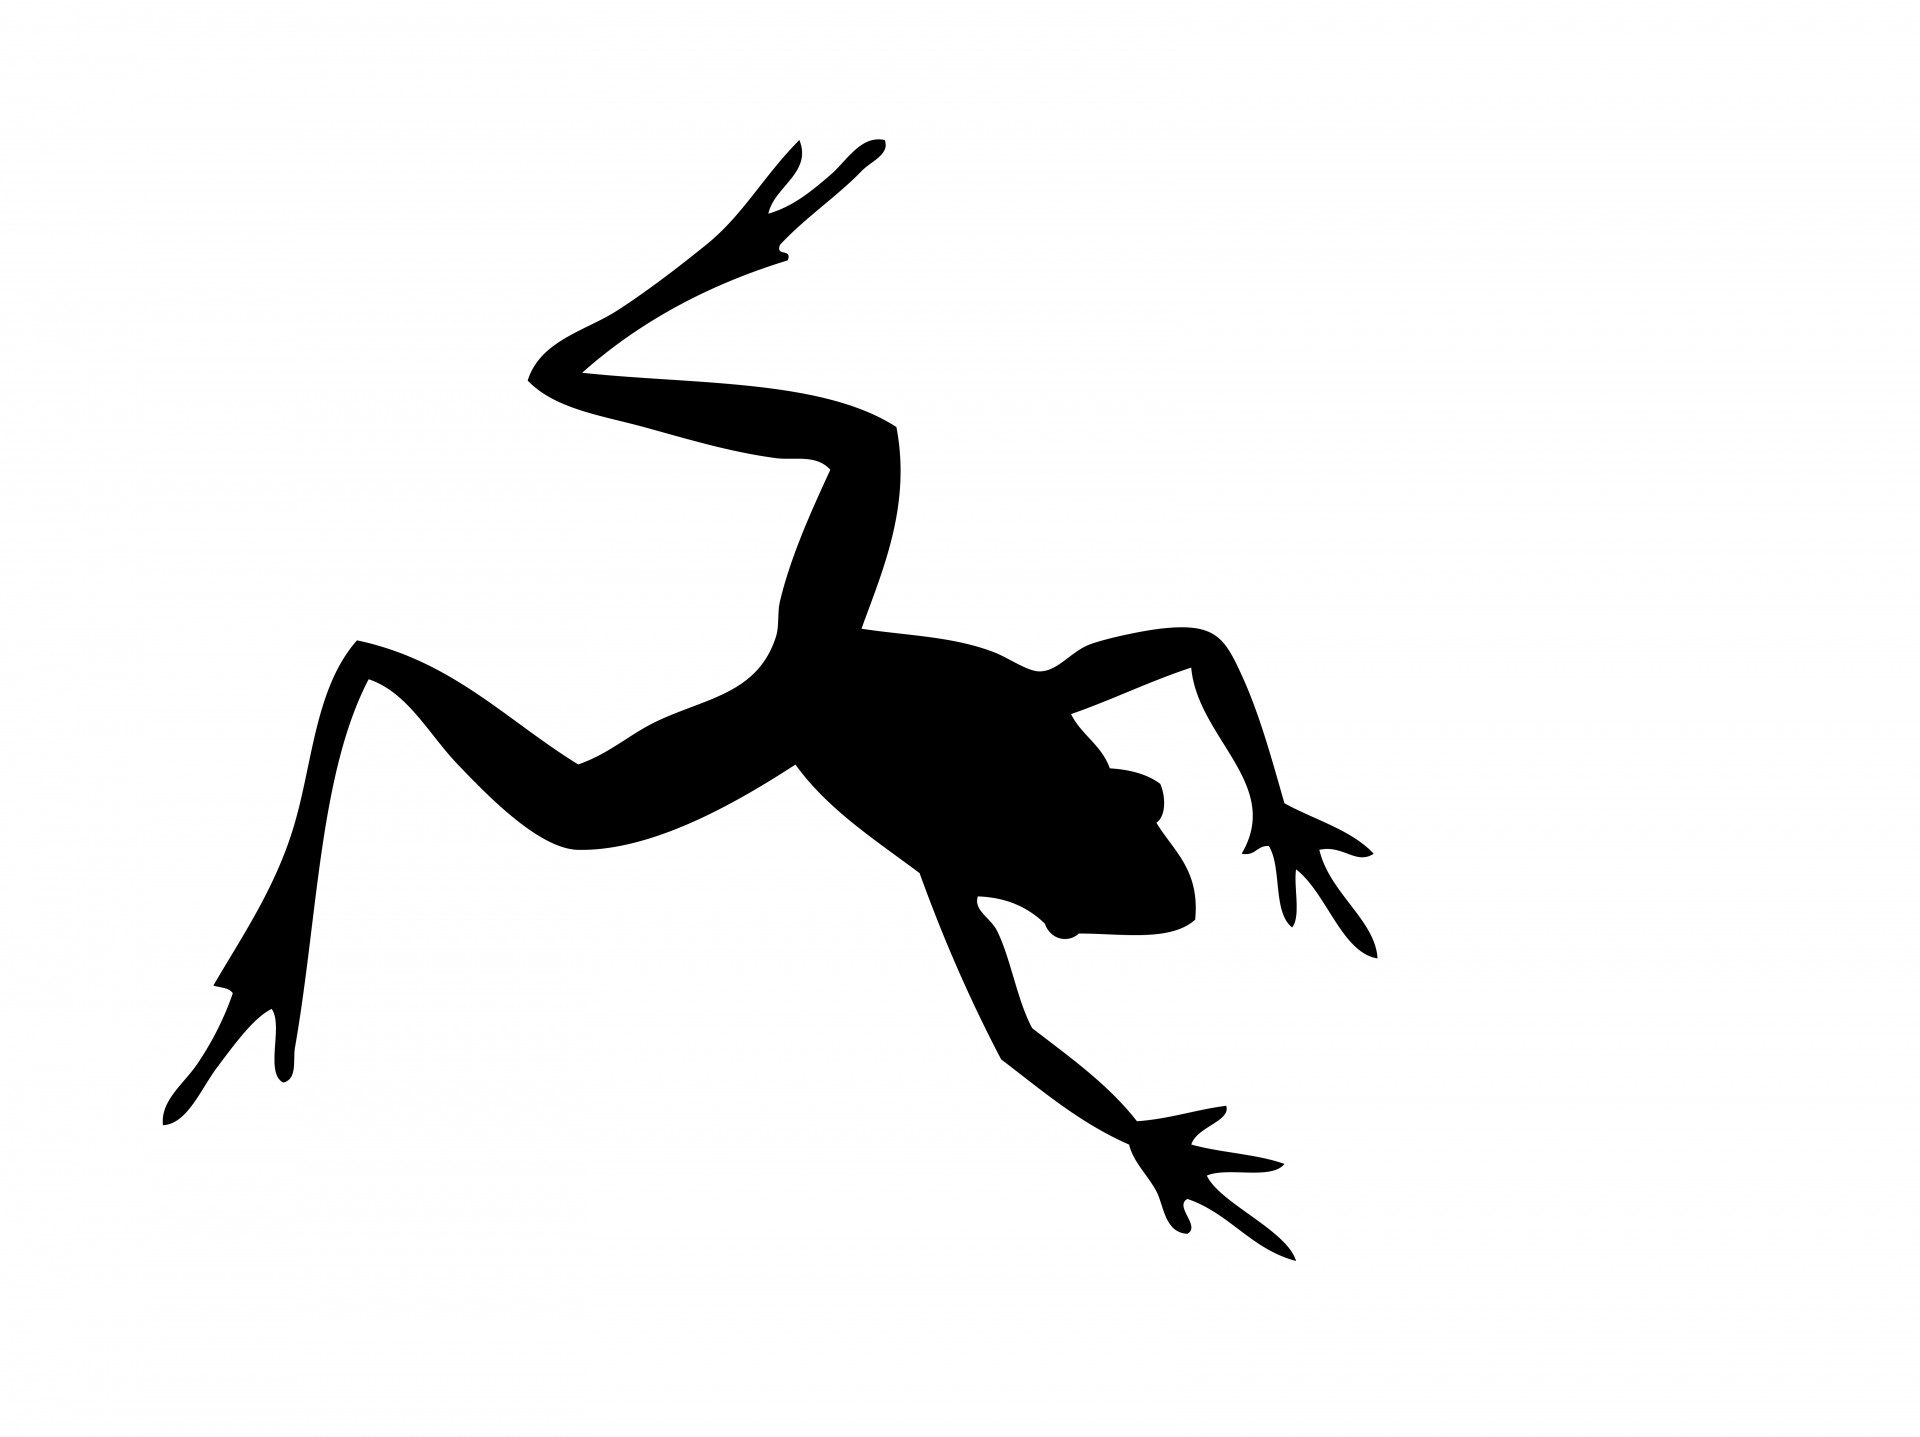 Frog Silhouette Free Stock Photo